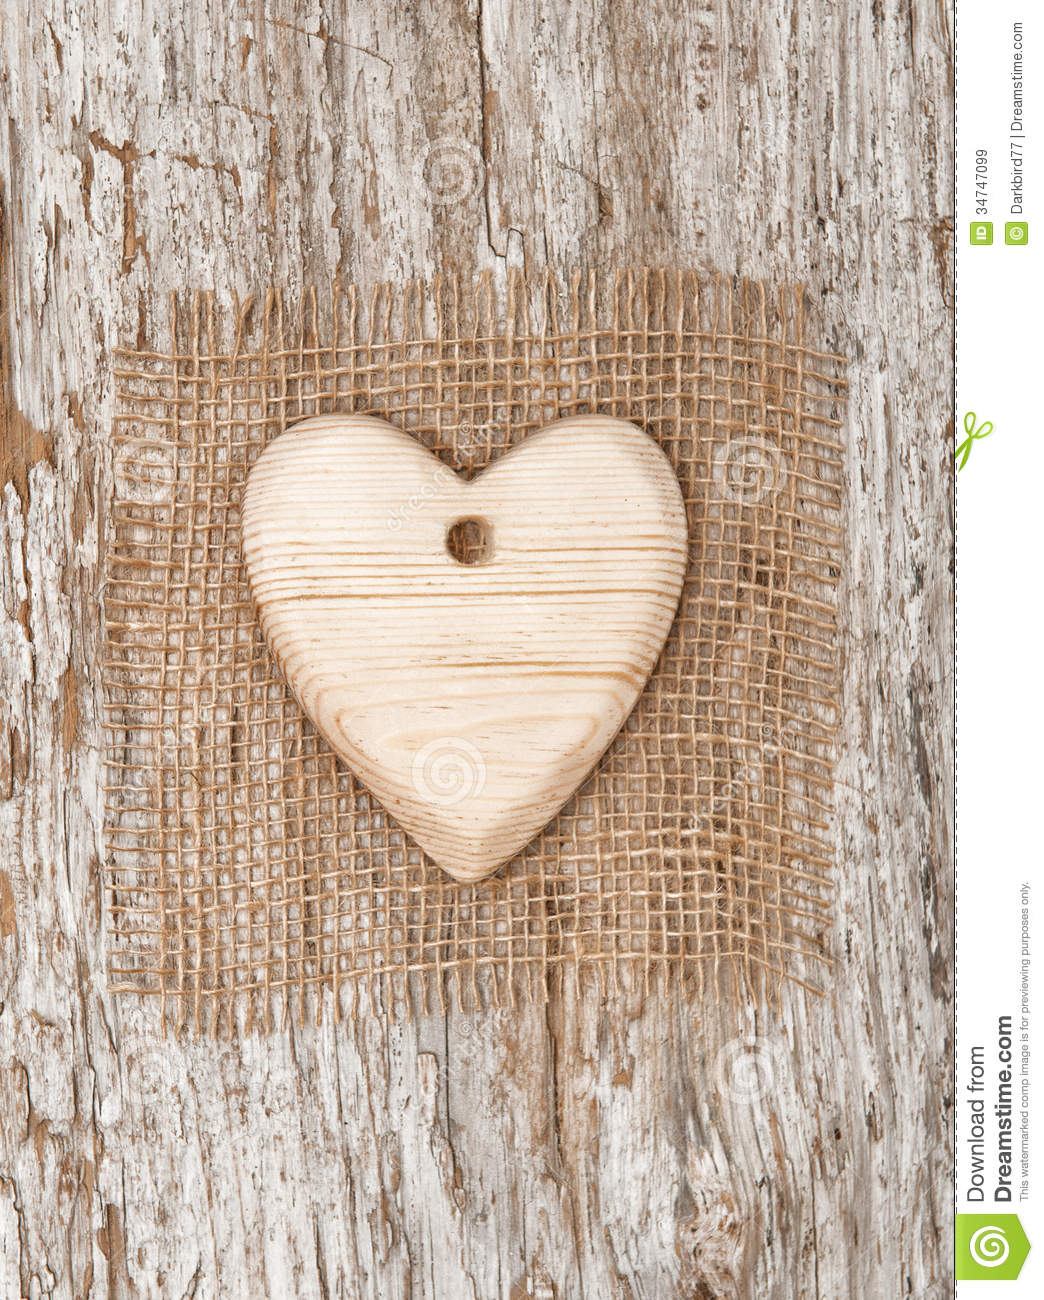 Wooden Heart With Burlap Textile On The Old Wood Royalty Free Stock